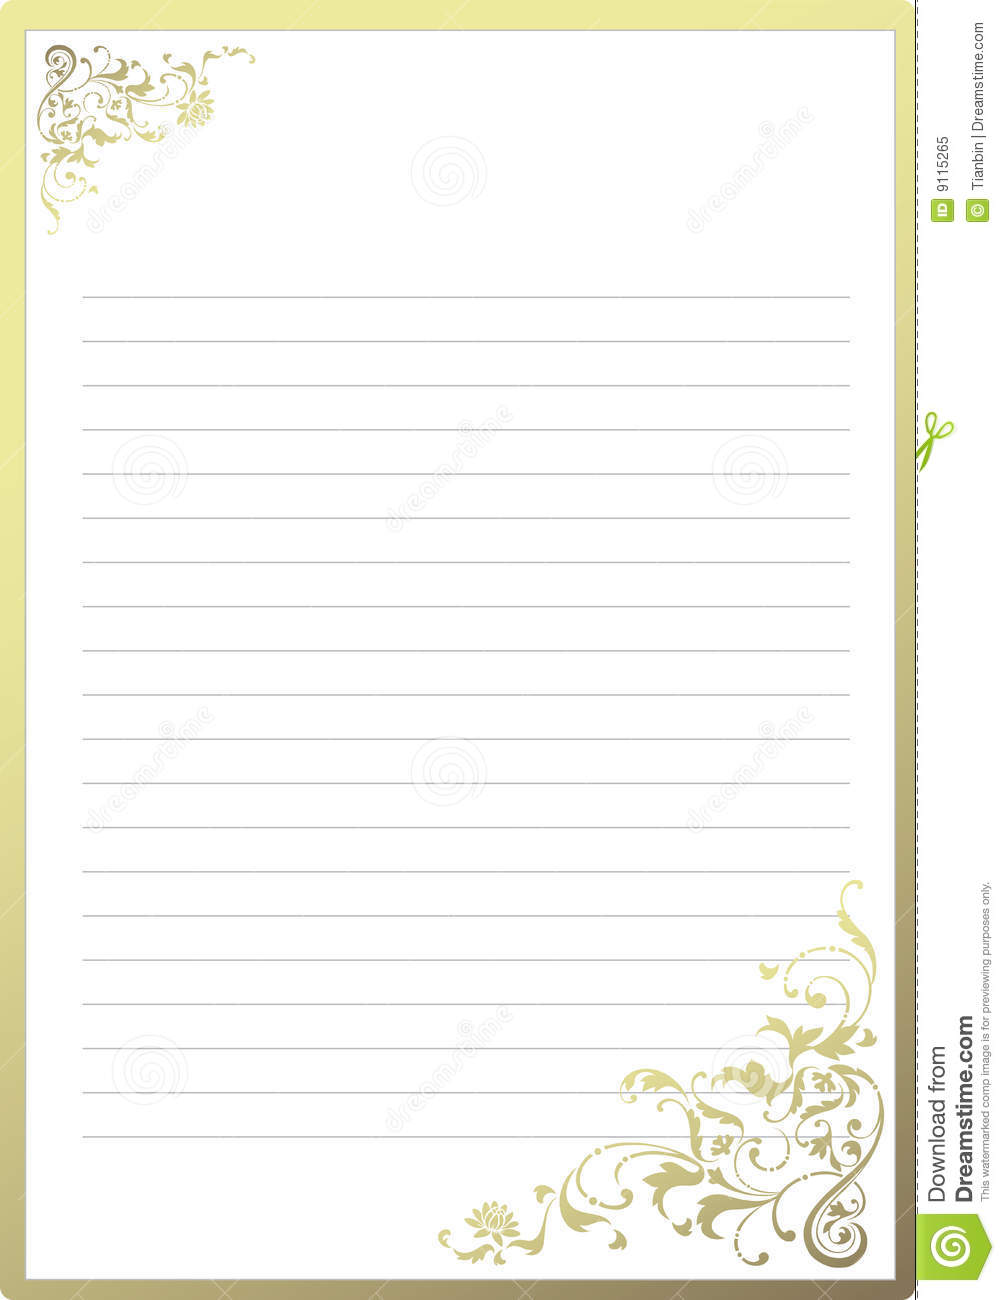 fancy notepaper stock vector illustration of golden decorated